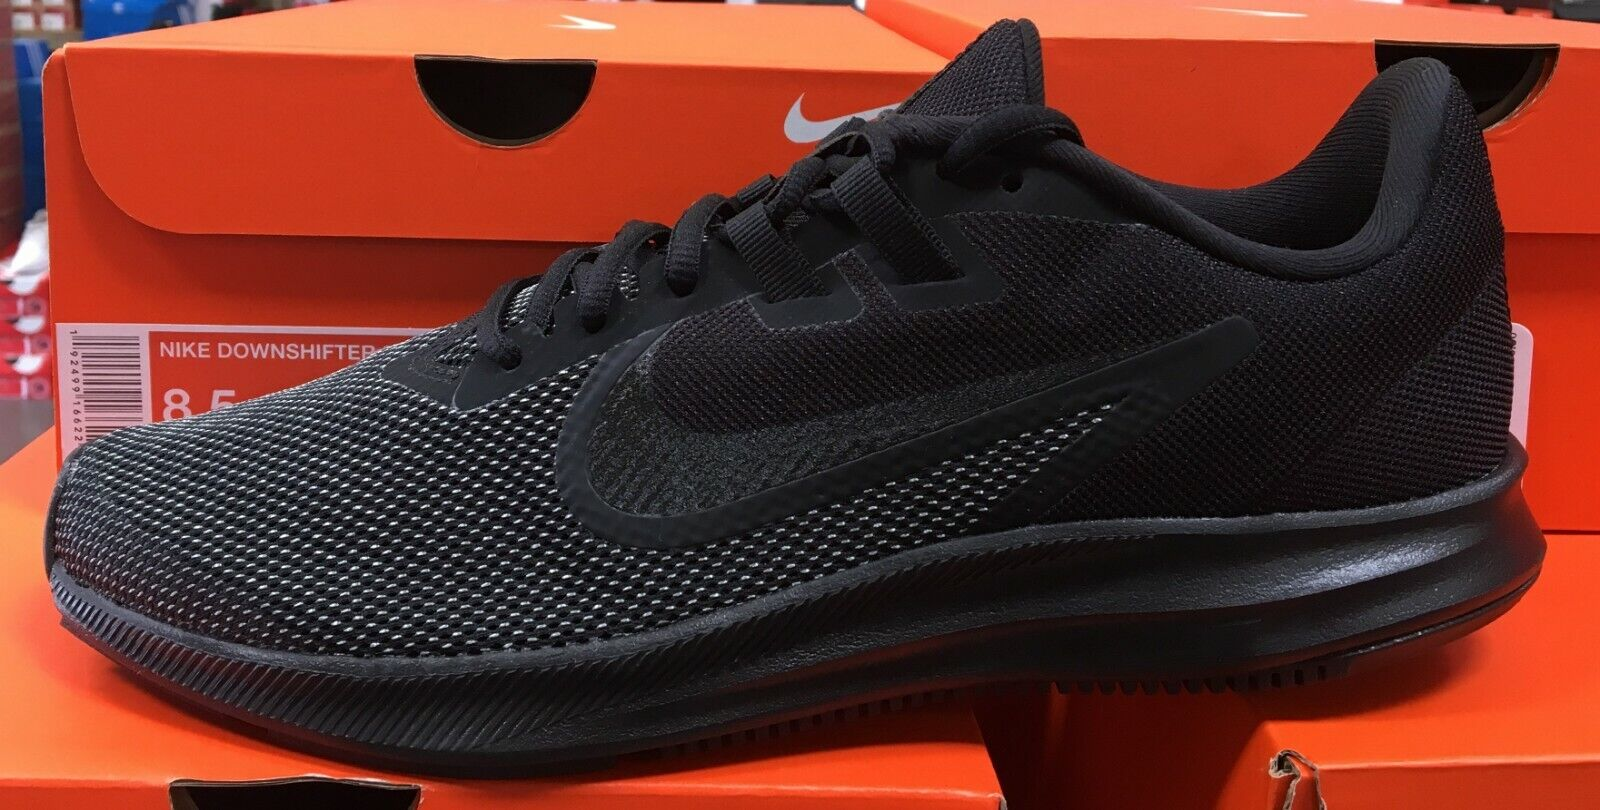 NIKE Downshifter 9 Homme Running Training Baskets Noir Anthracite AQ7481 005 K